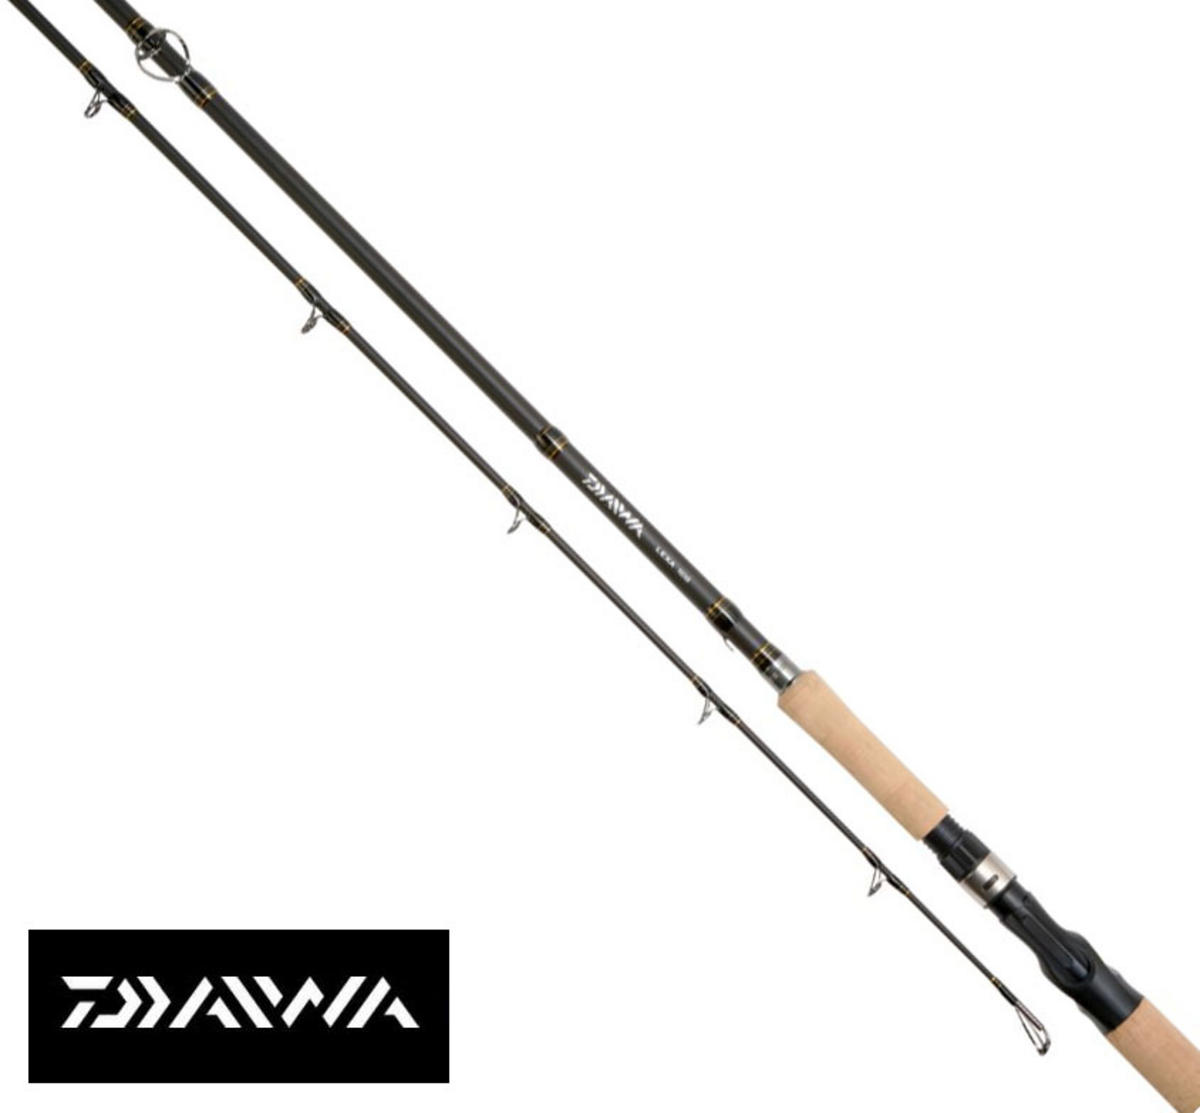 NEW DAIWA LEXA VERTICAL JERKBAIT ROD 6'5' 2PC JERKBAIT 50g LX652MVB-AN